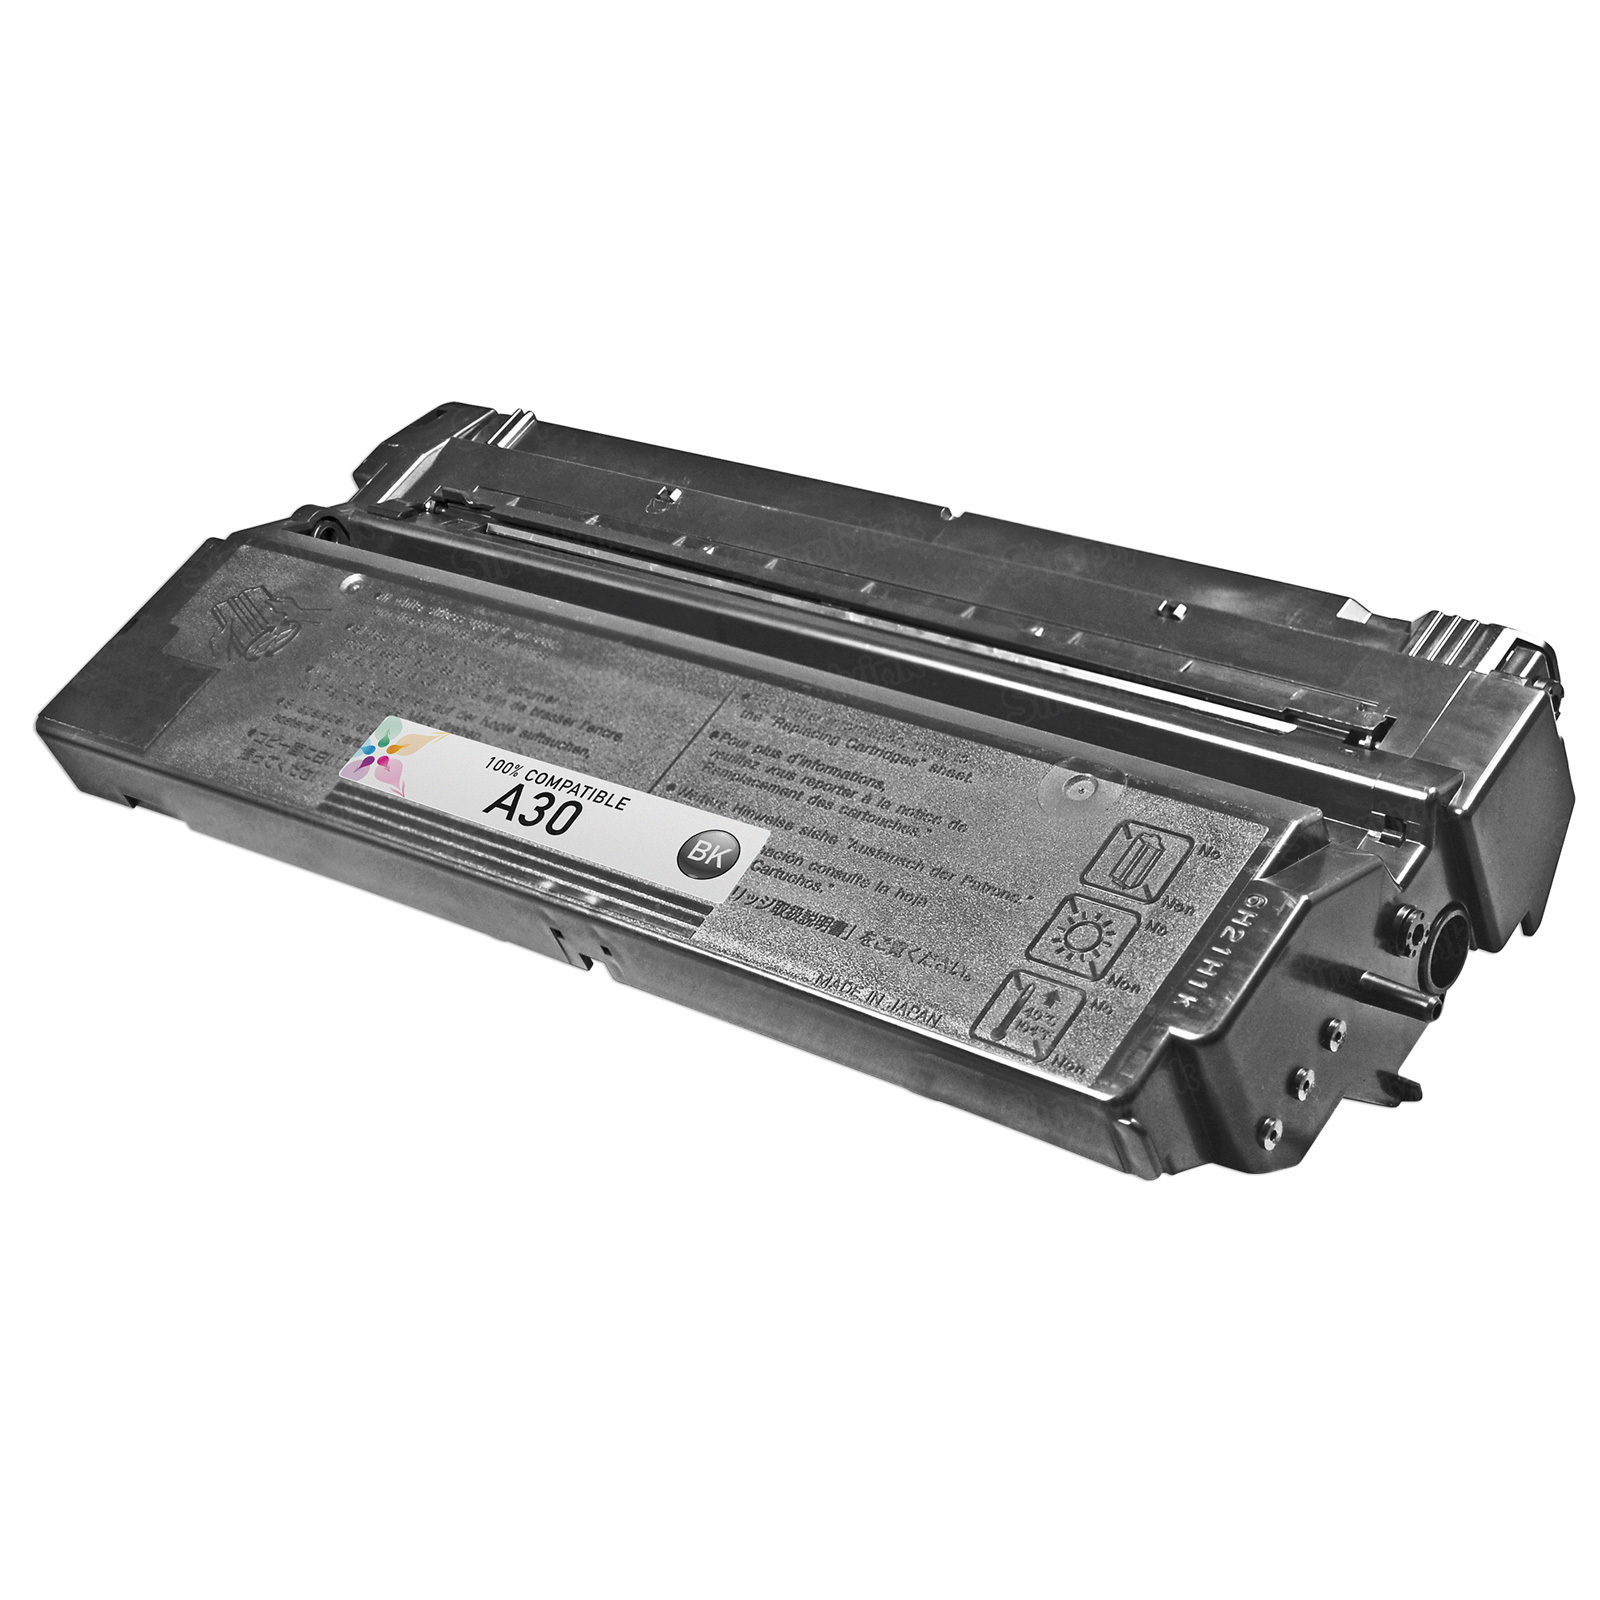 Canon Compatible A30 Black Toner Cartridge